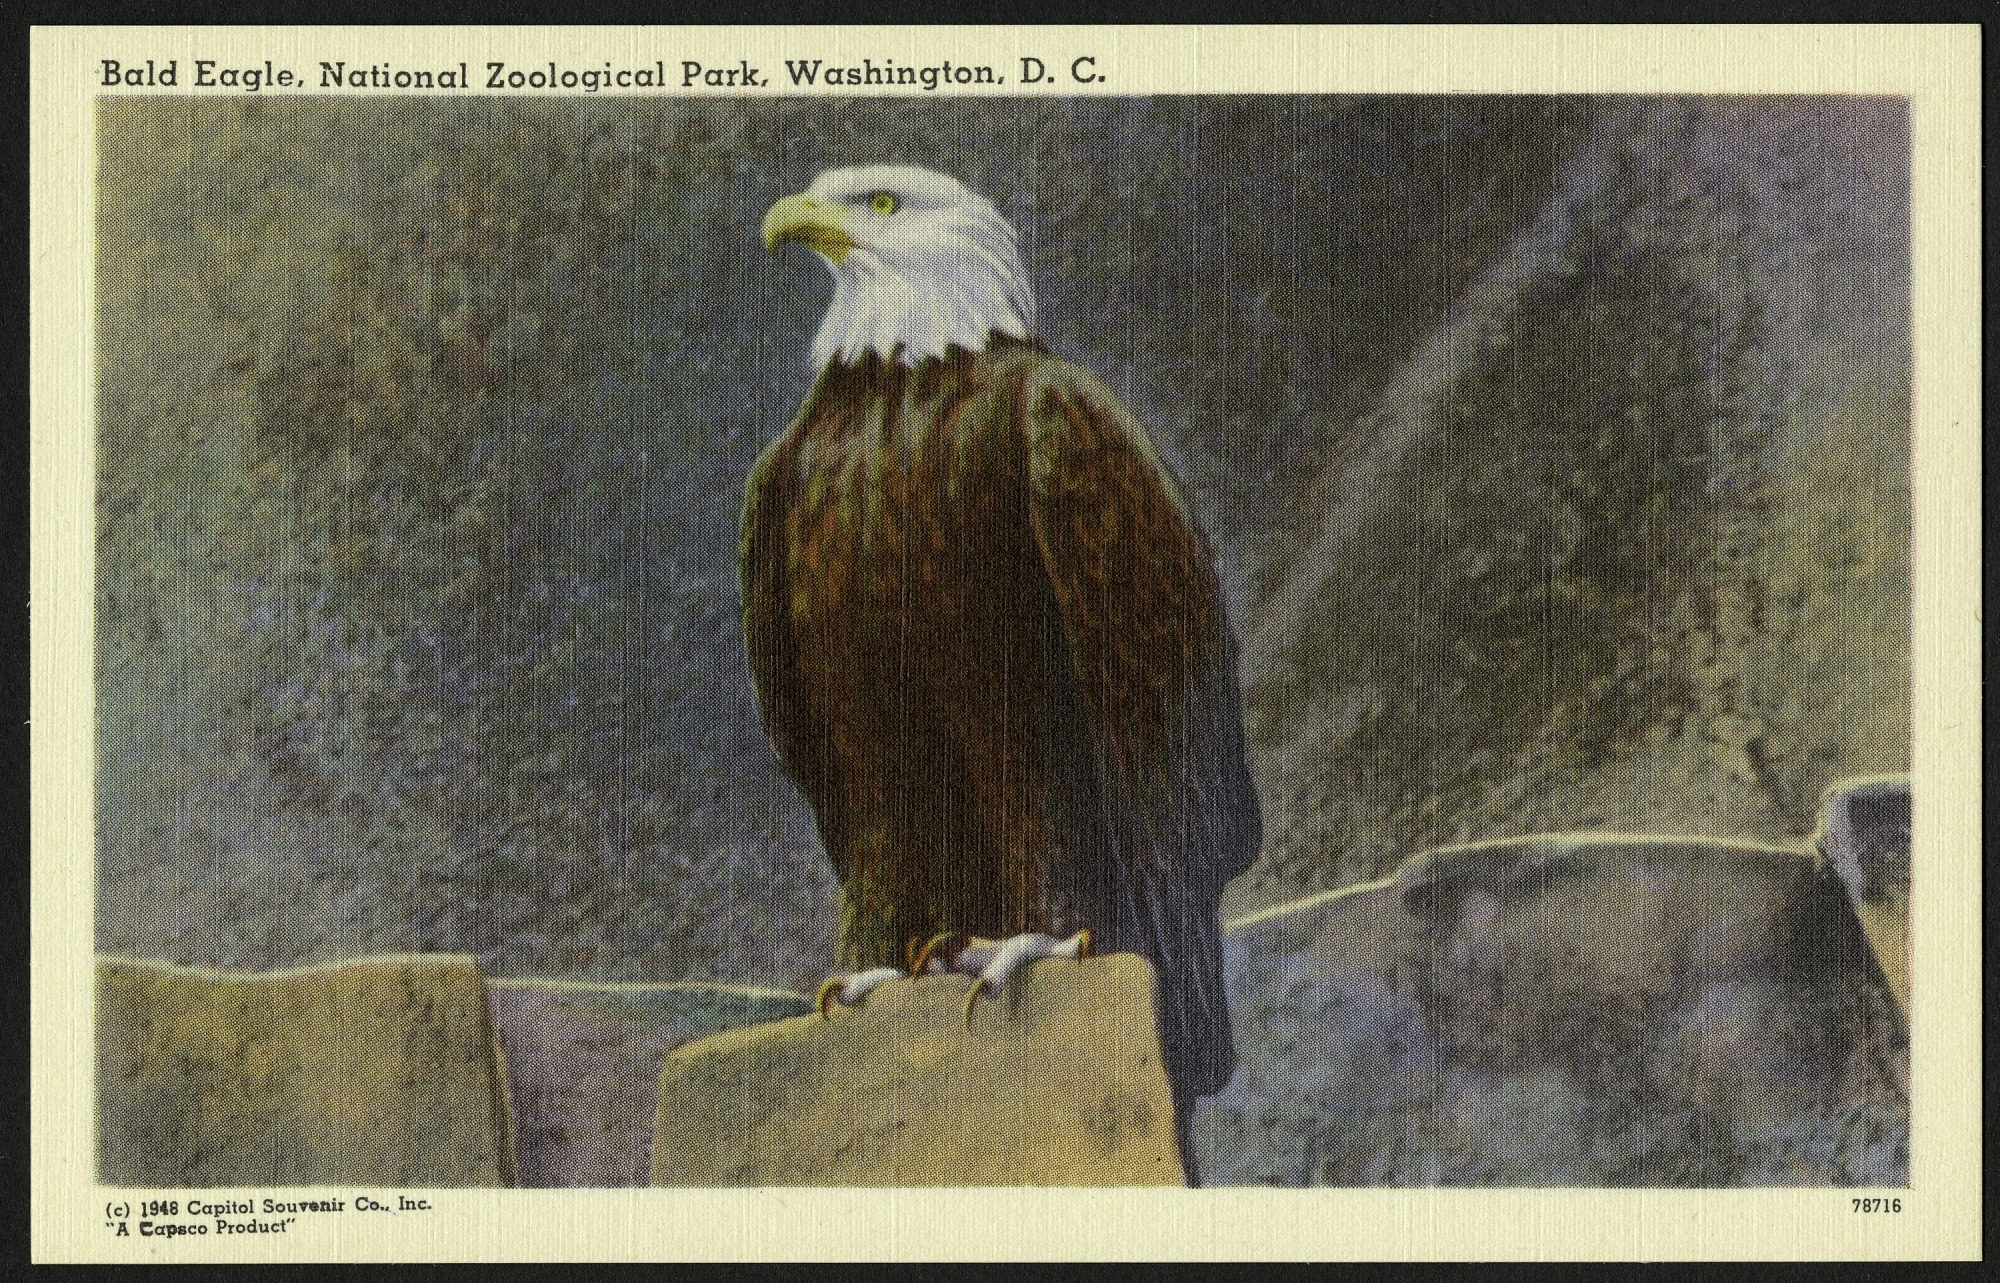 Blank Postcard of a Bald Eagle at the Zoo